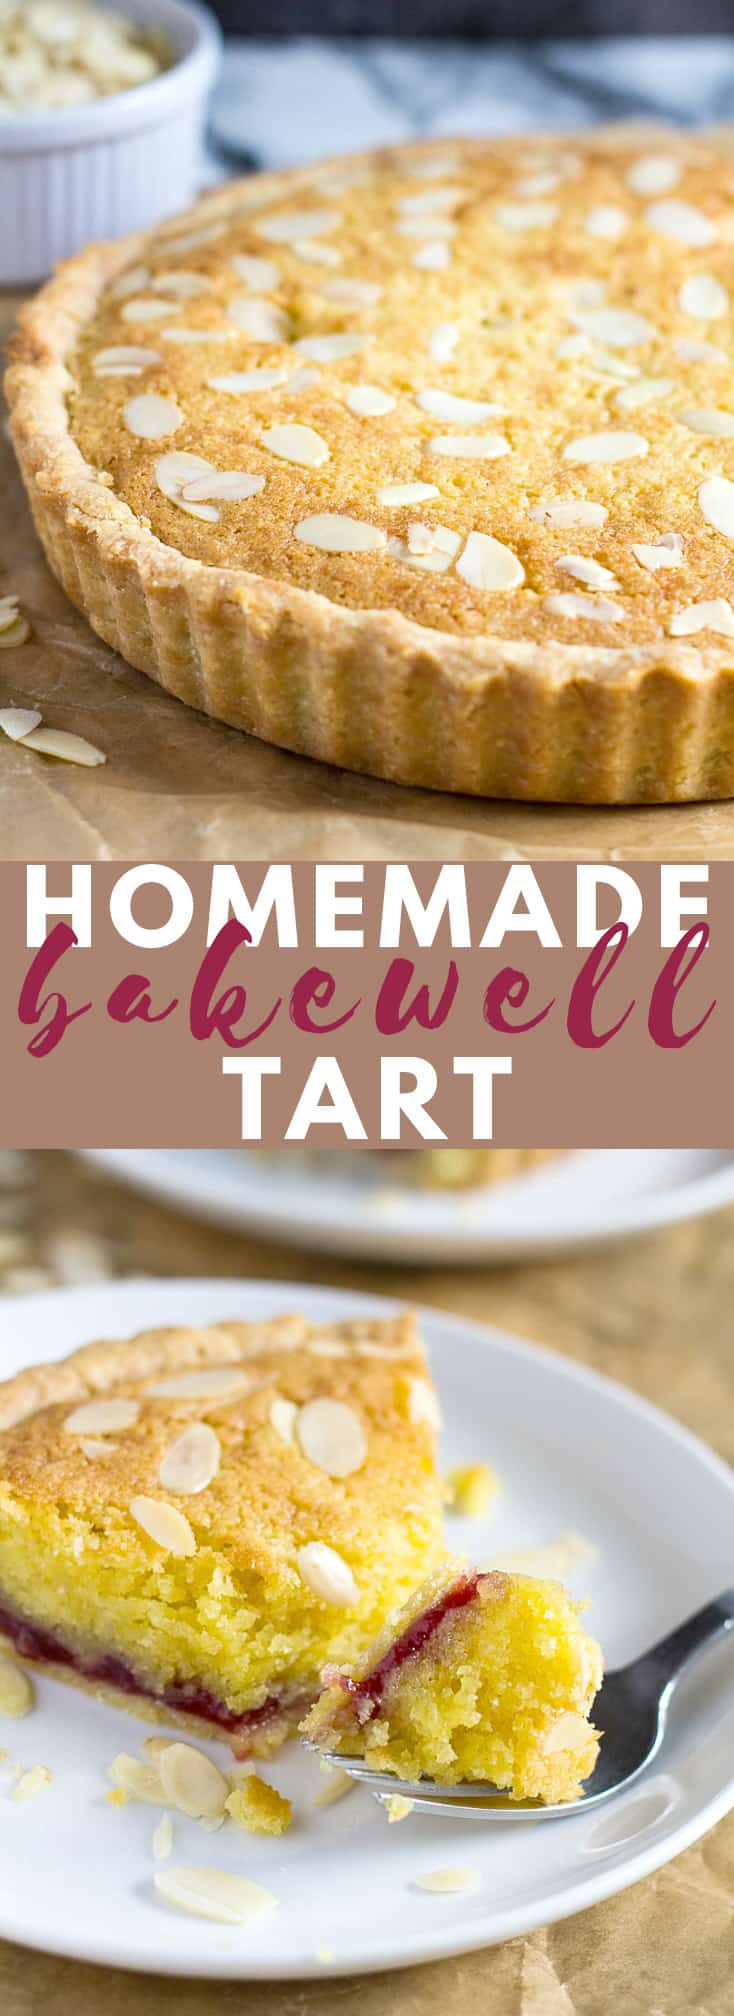 Bakewell Tart - A sweet shortcrust pastry filled with raspberry jam, almond flavoured sponge, and topped with flaked almonds! #bakewelltart #tartrecipes #cherrybakewell #recipe